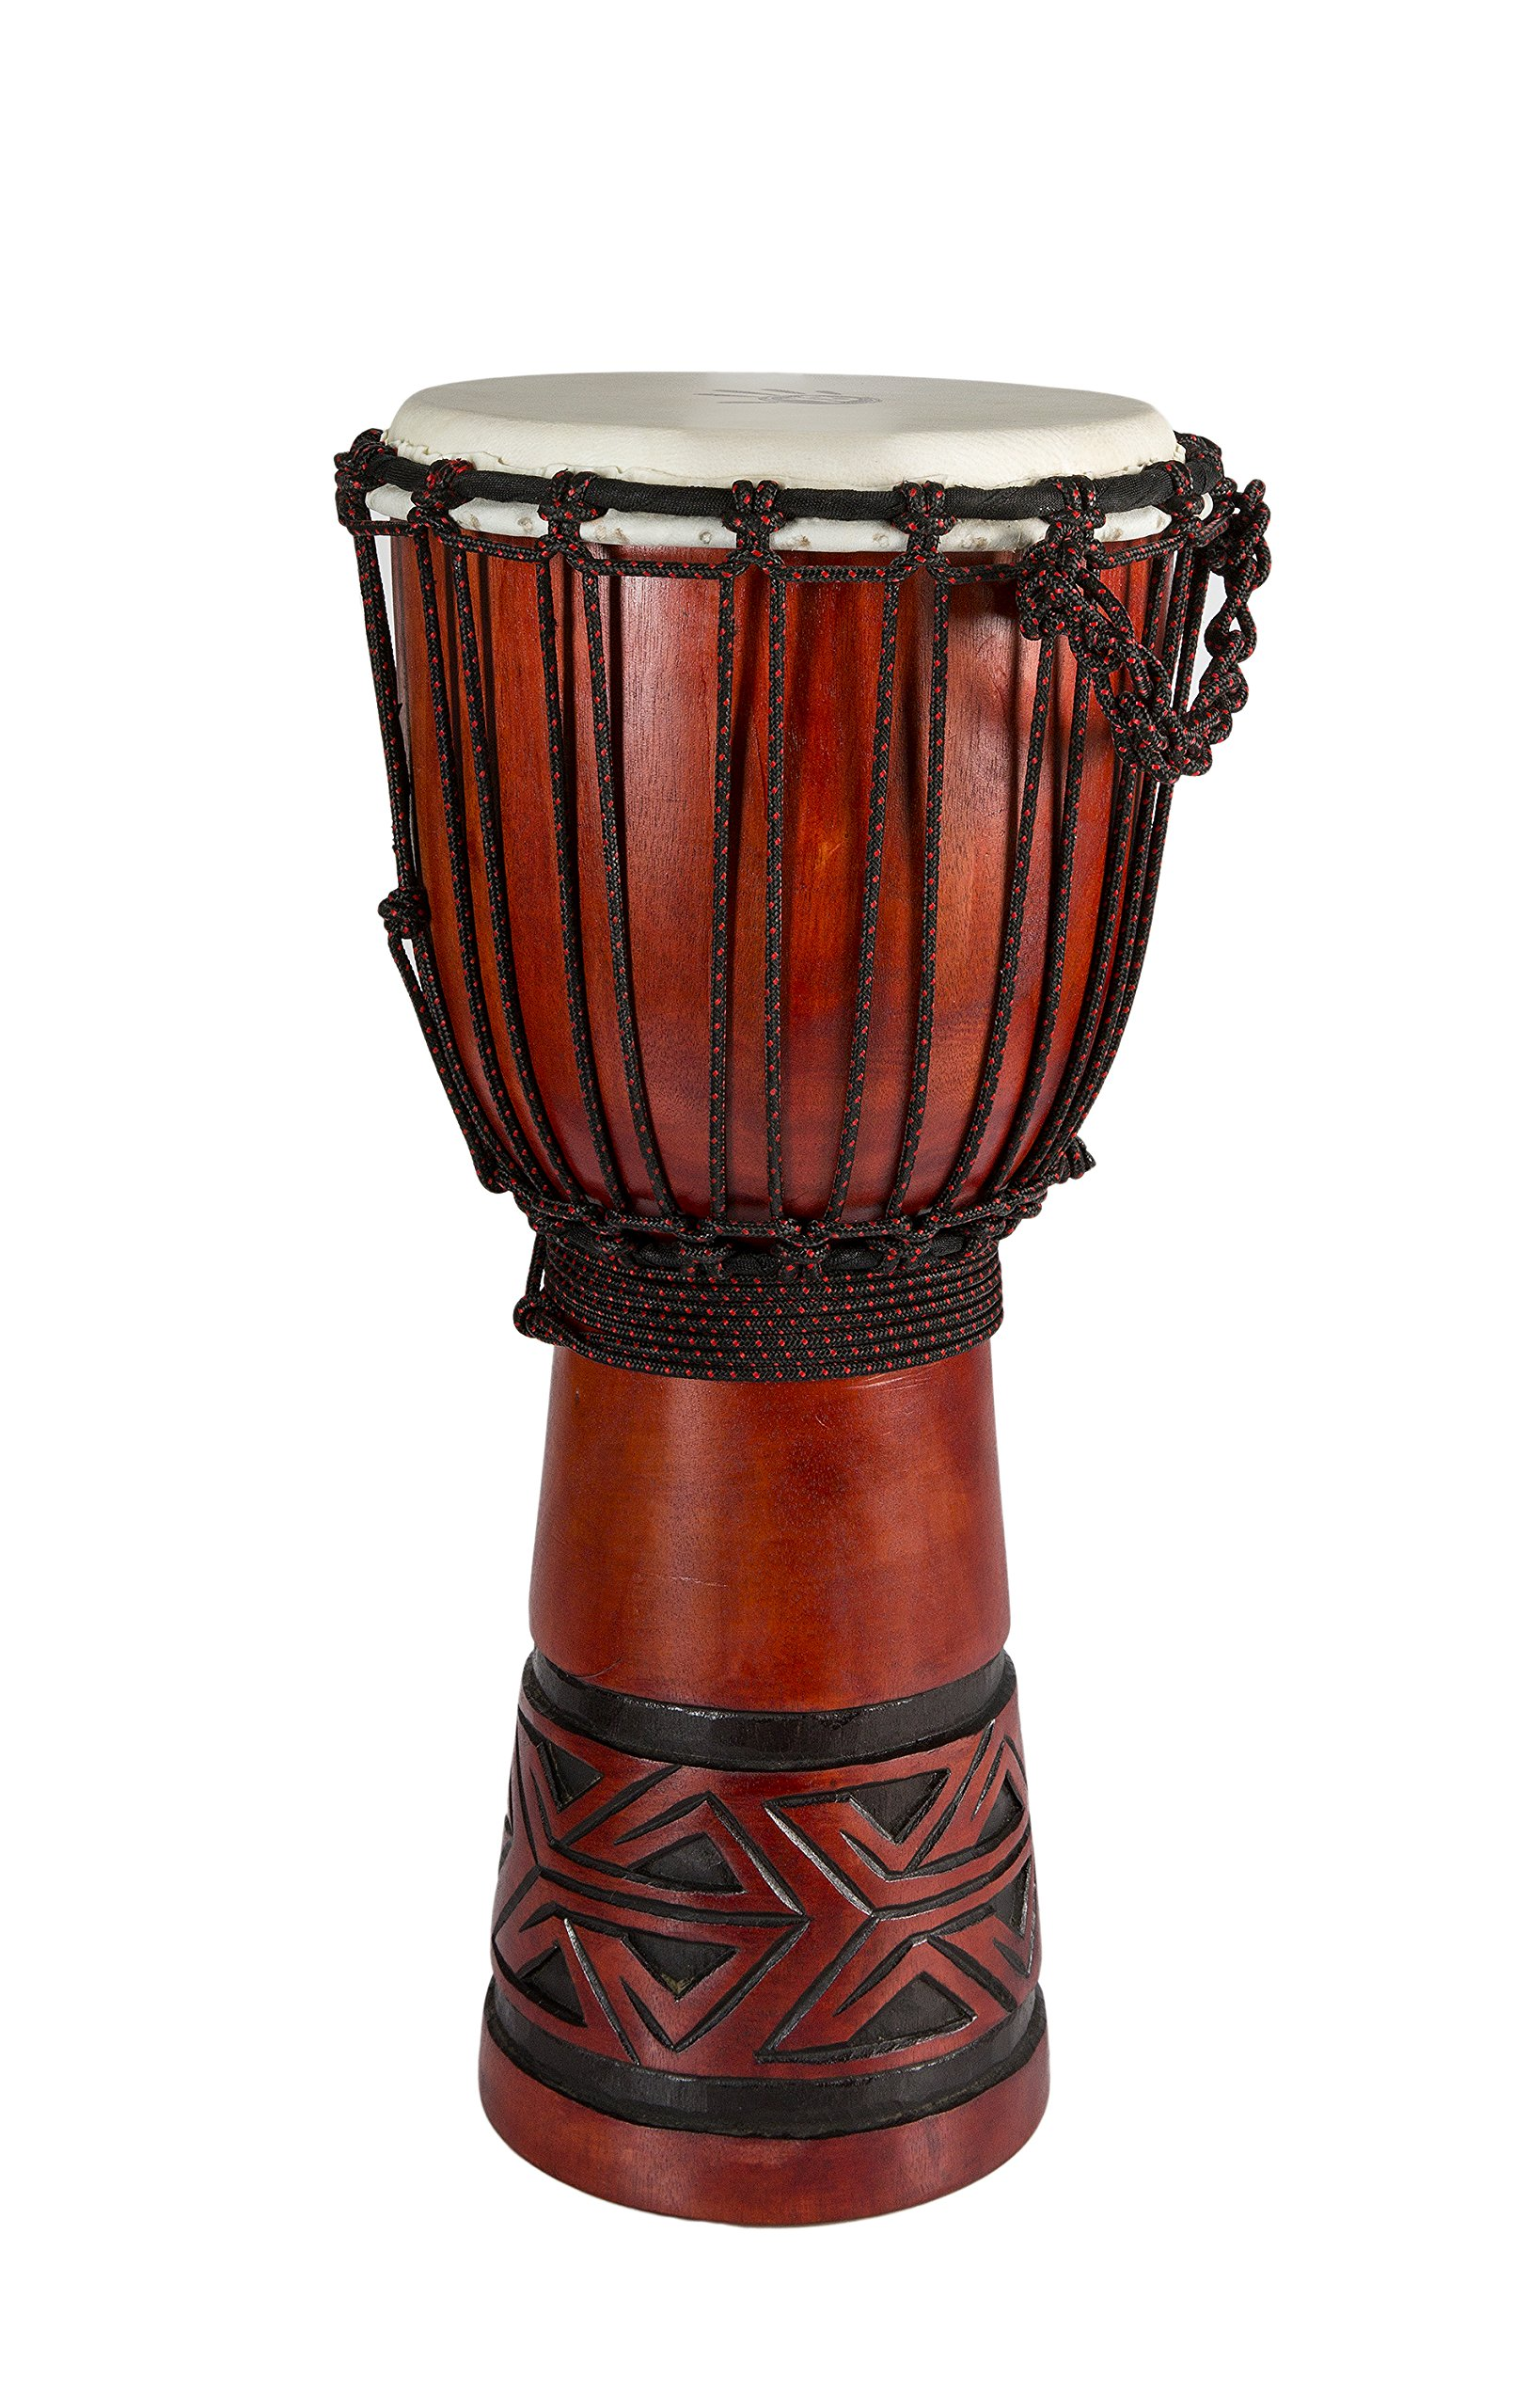 X8 Celtic Labyrinth Djembe Head 19 - Inch - 20 - Inch tall x 10 - Inch - 11 - Inch